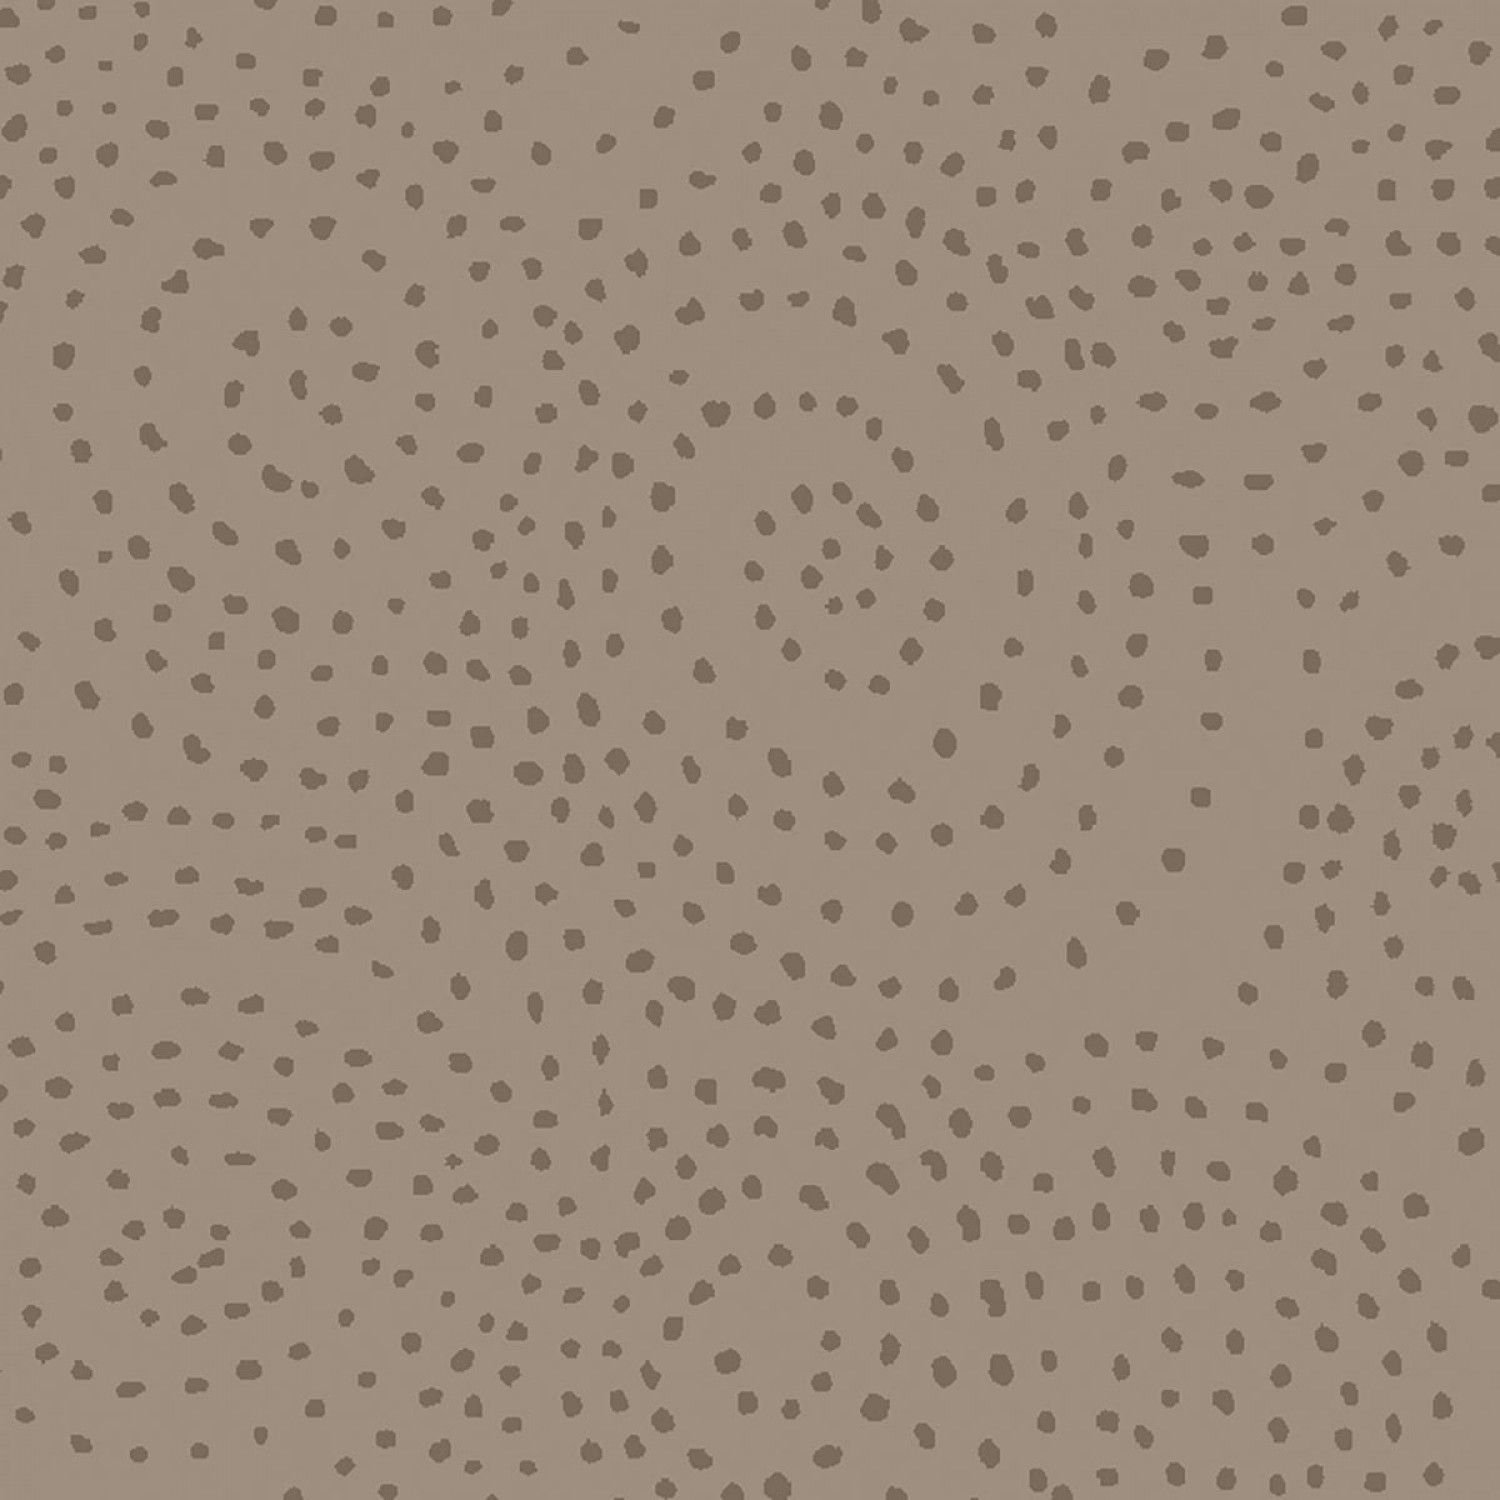 Bear Essentials 3 Swirl Dots Taupe